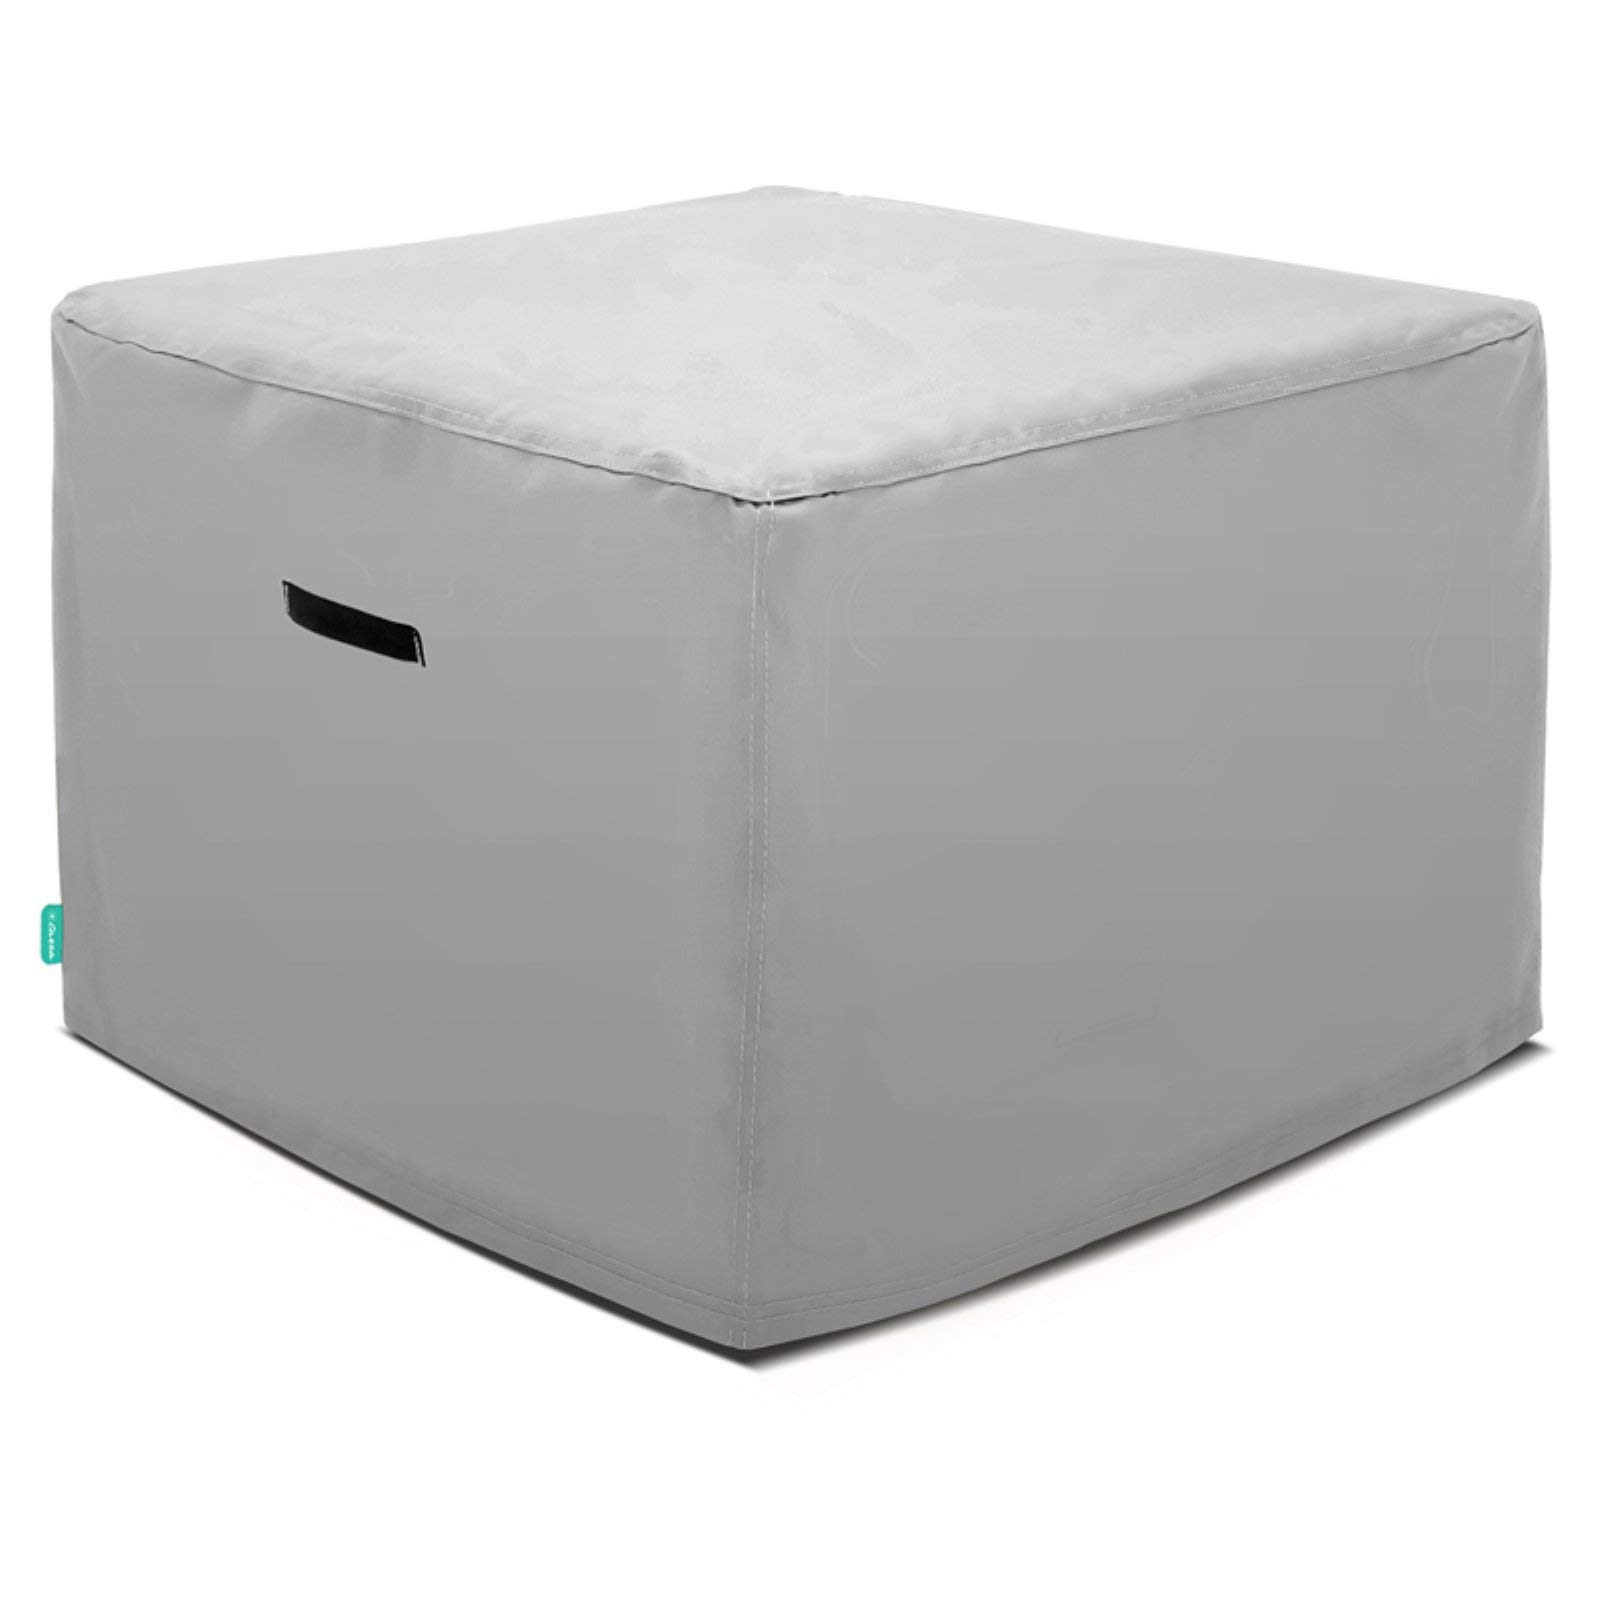 OKSLO Universal outdoor ufcoz343418pt patio square ottoman cover